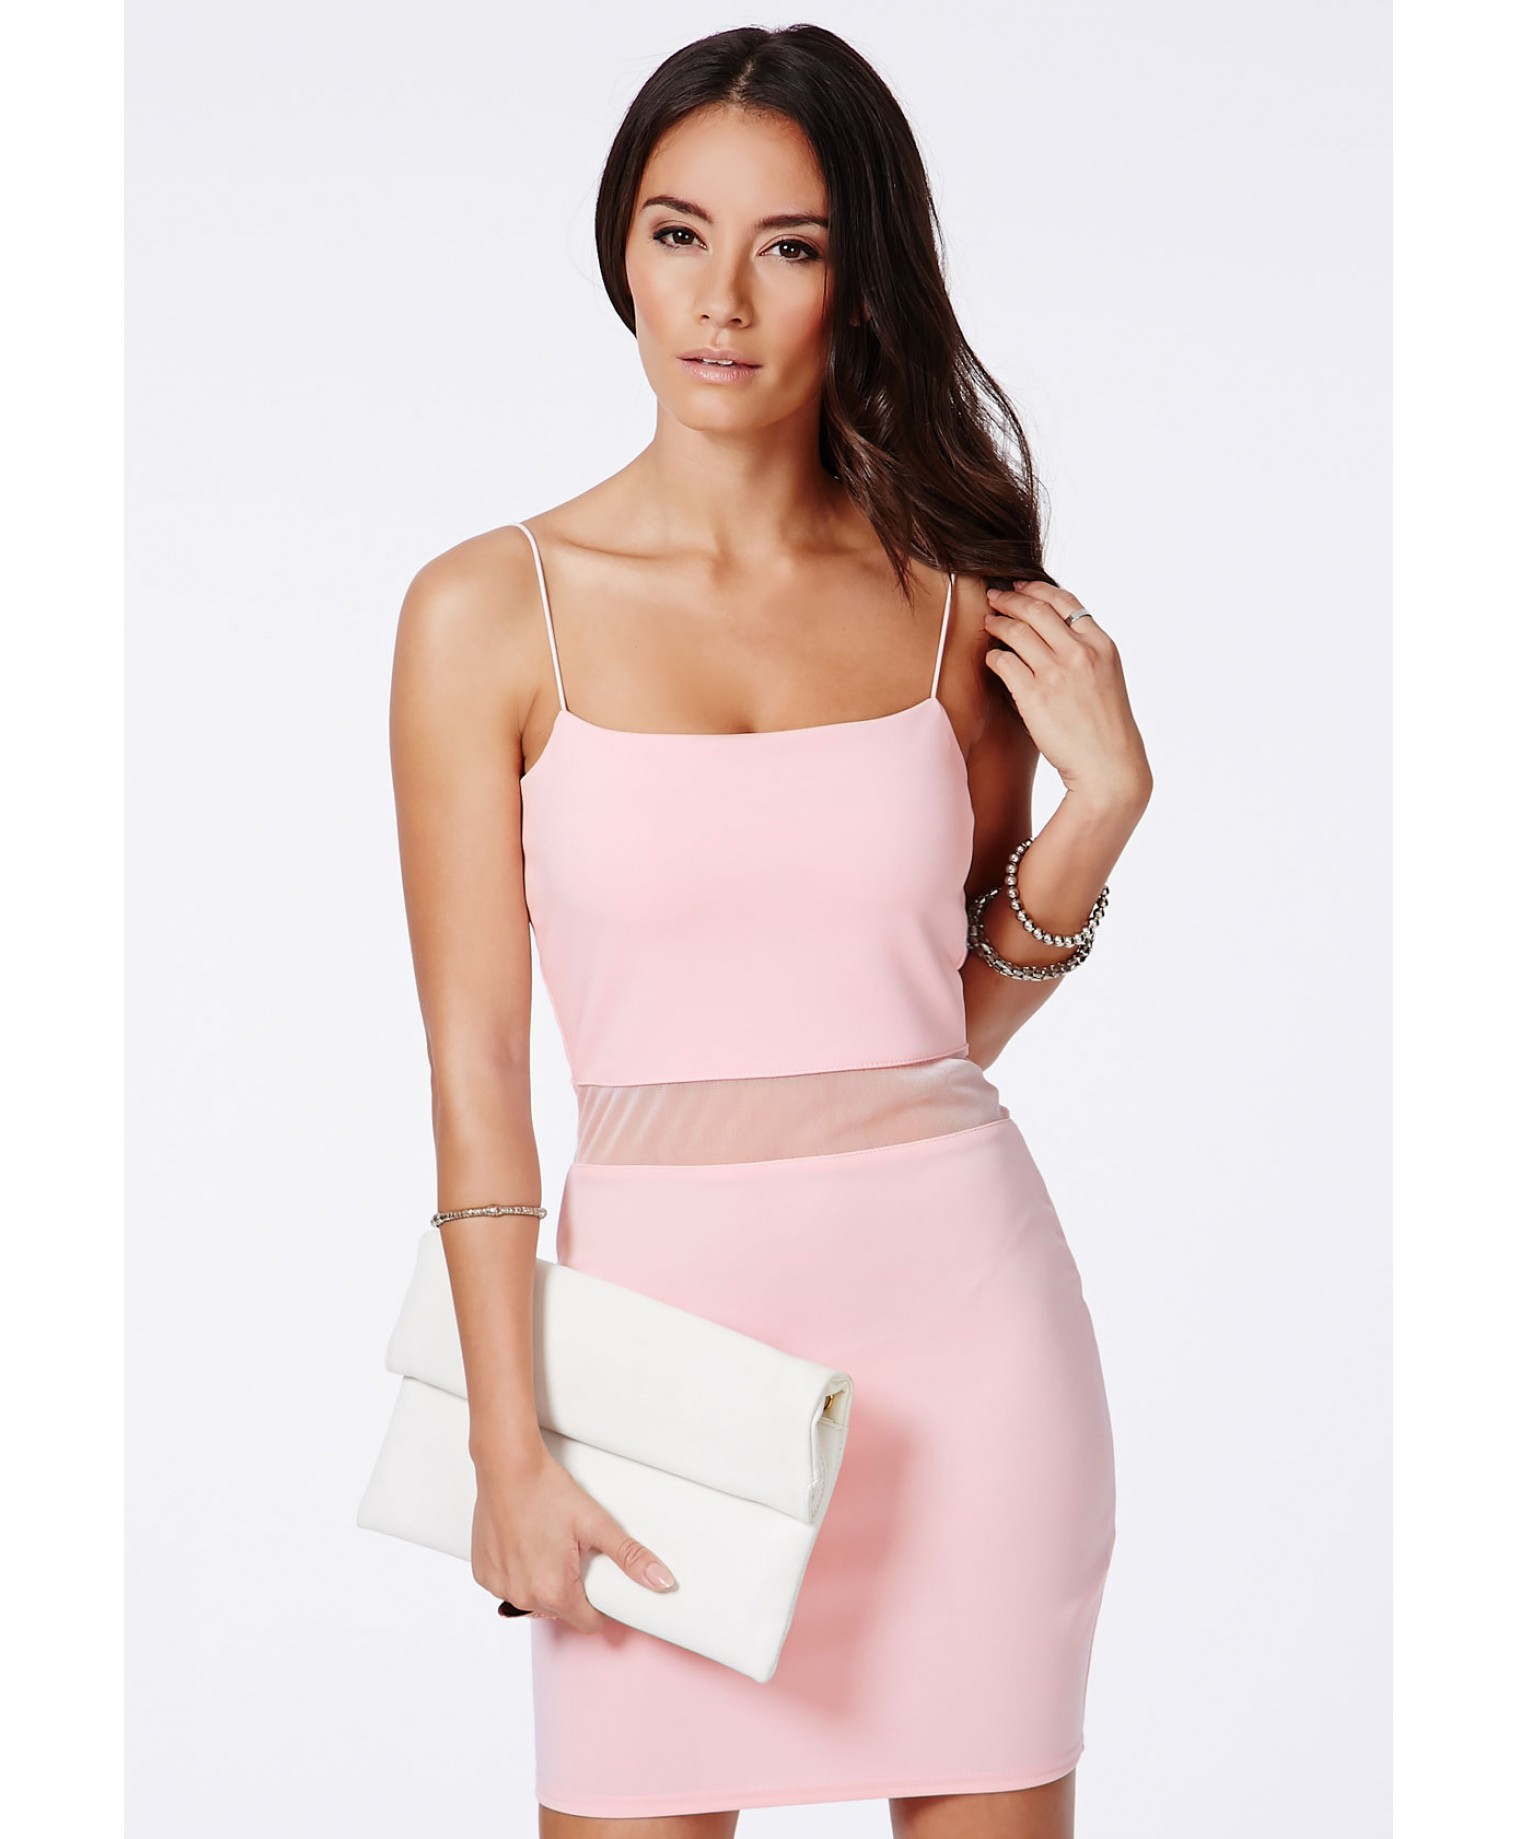 7580a385c470 Missguided Lotye Pink Mesh Panel Bodycon Dress in Pink - Lyst